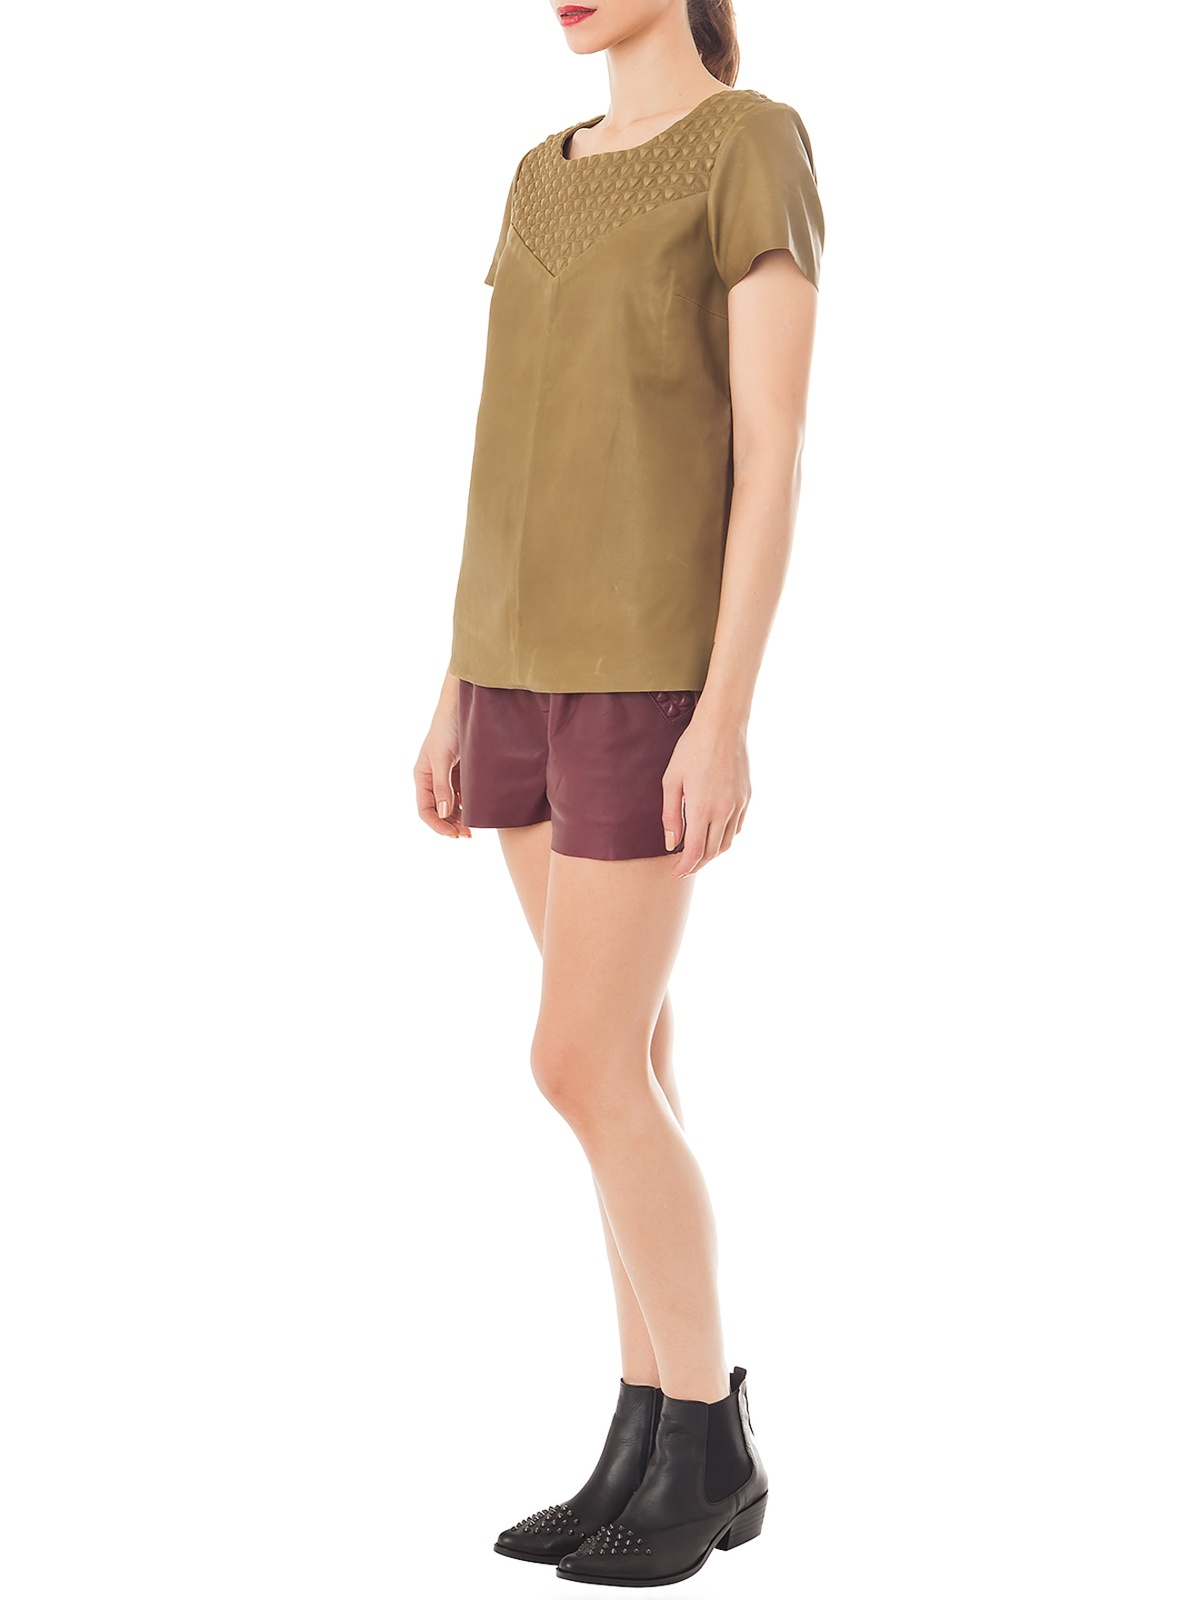 SERENDIPITY BURGUNDY SHORTS | GIRISSIMA.COM - Collectible fashion to love and to last